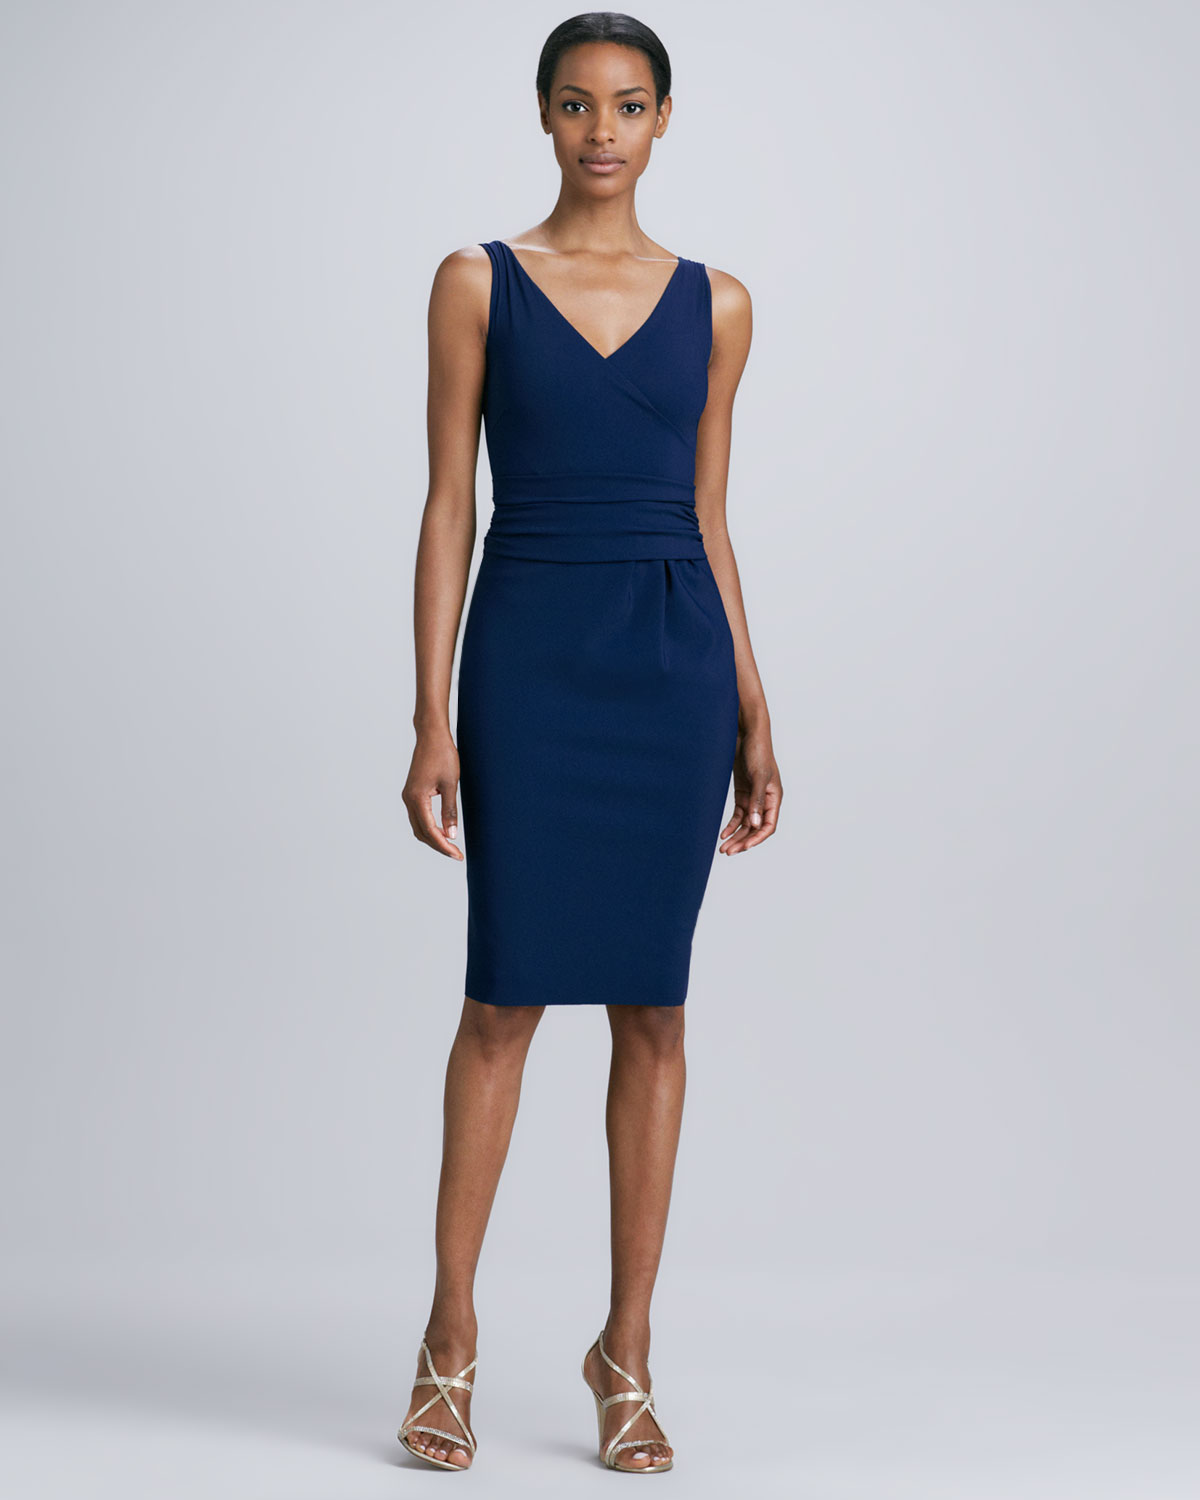 Chiara Boni The Most Popular Dress In America: La Petite Robe Di Chiara Boni Lucia Sleeveless